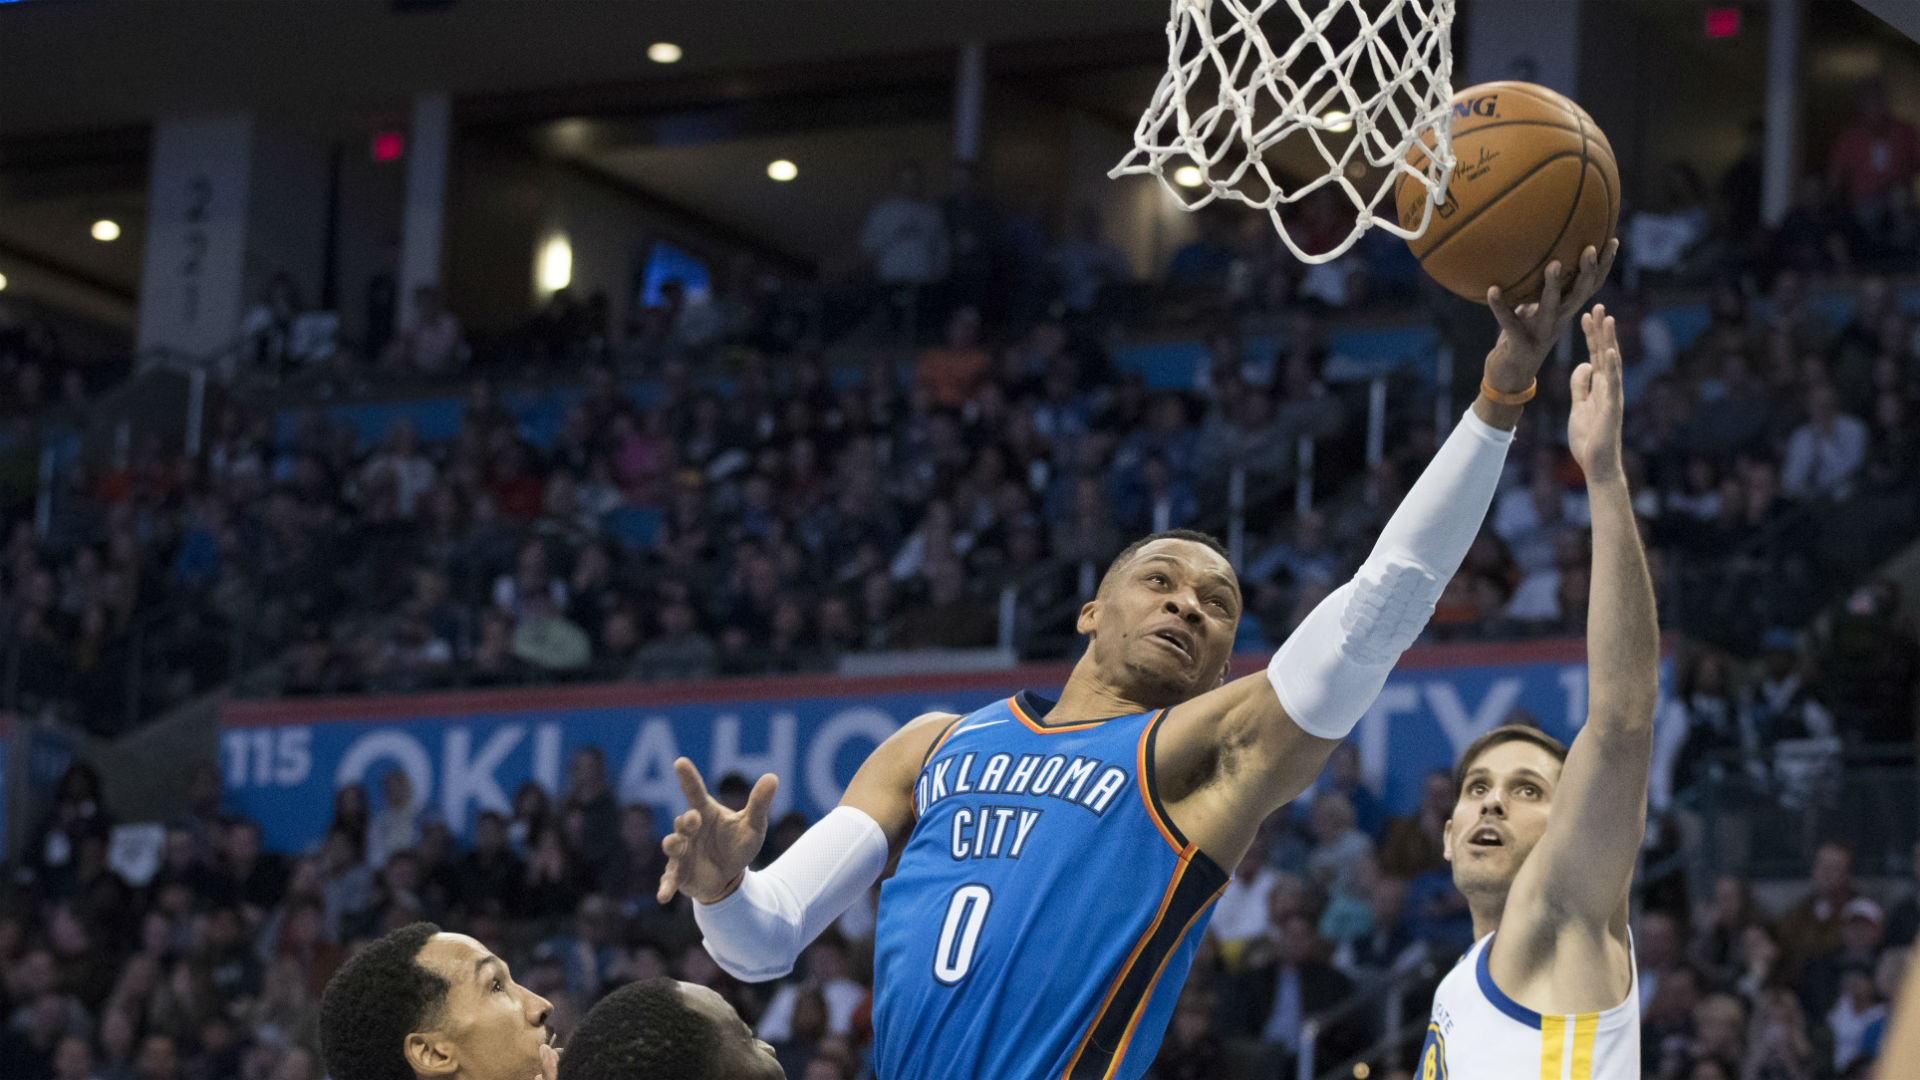 Warriors vs. Thunder: Score, results, highlights from OKC's blowout win